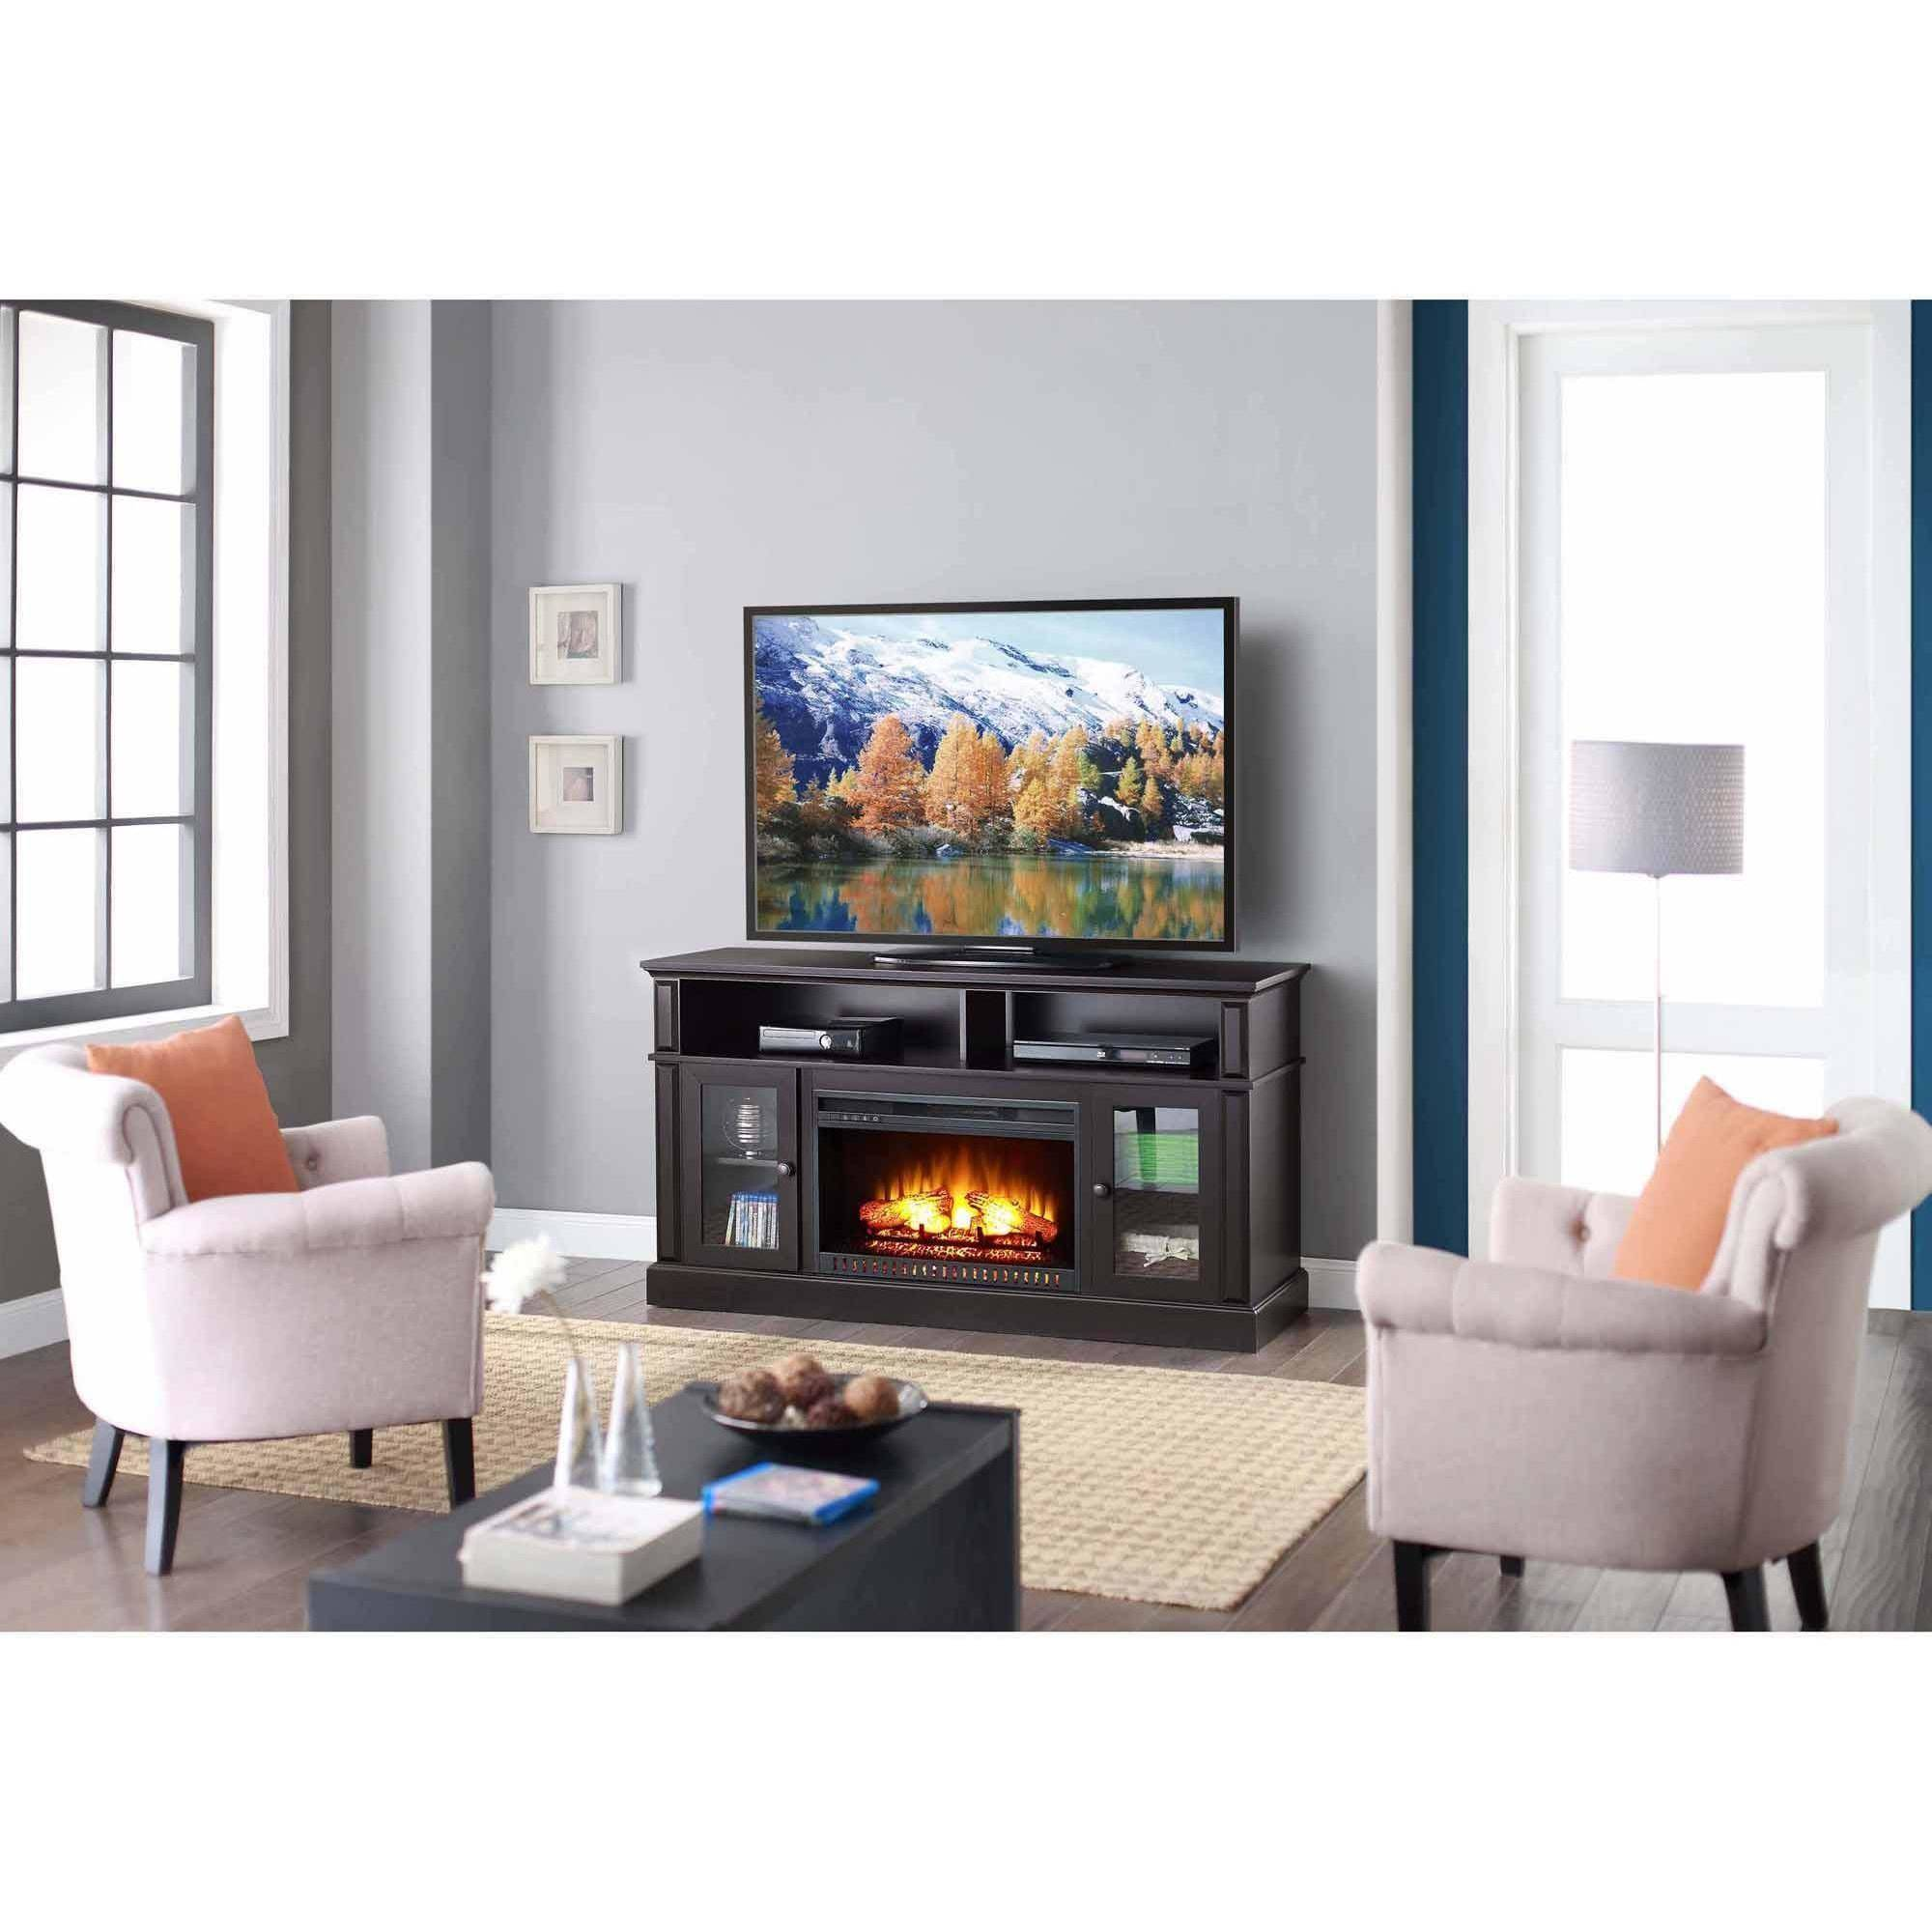 tv stand media fireplace 70 entertainment storage wood console electric heater 764053506017 ebay. Black Bedroom Furniture Sets. Home Design Ideas